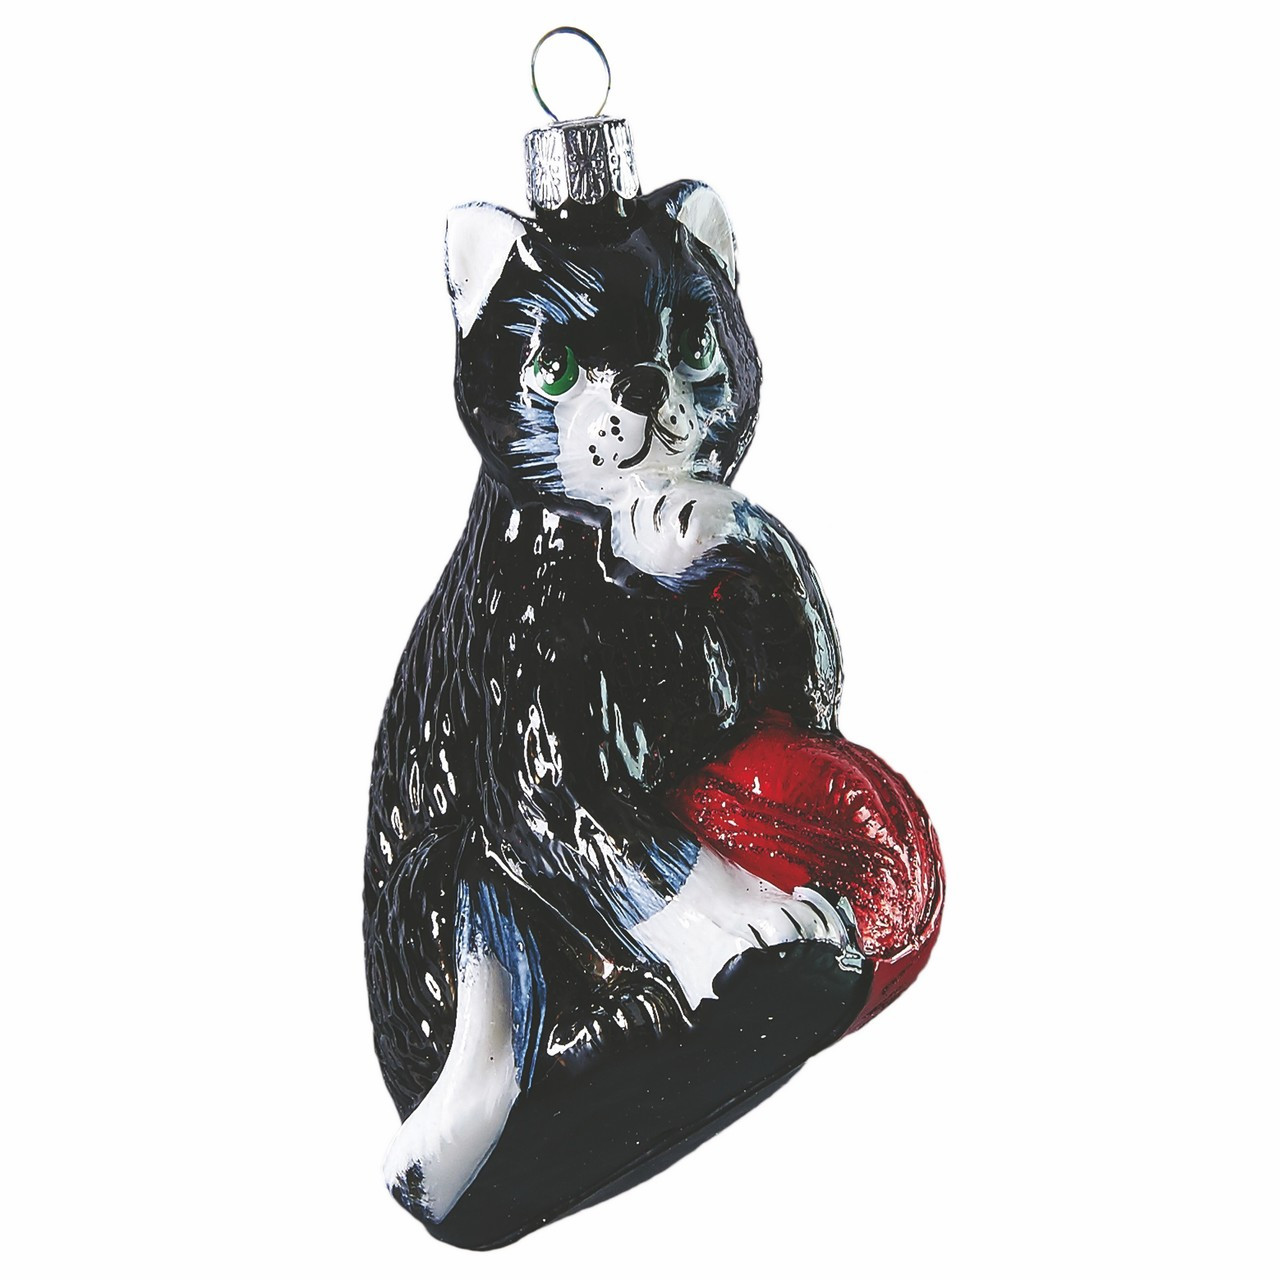 hand crafted christmas ornament black cat with red ball - Black Cat Christmas Ornament